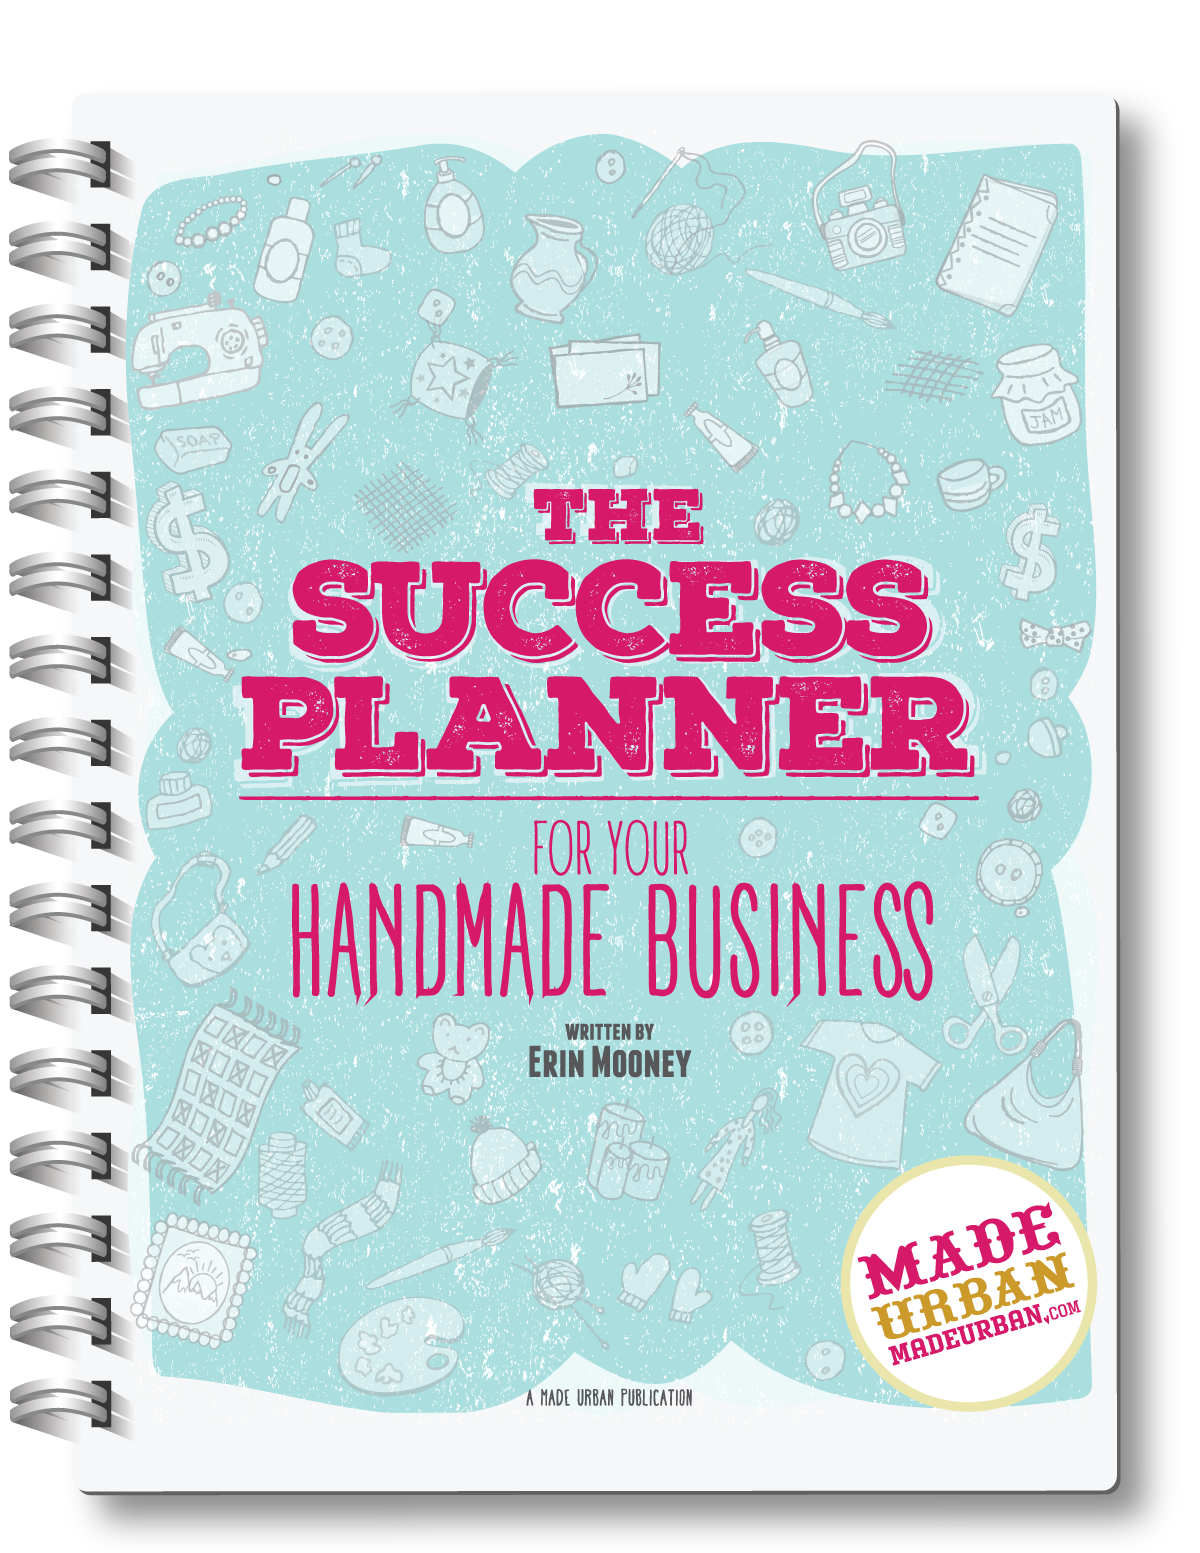 If you haven't been reaching your sales goals and feel like your business is unorganized, this planner is for you. It's not simply blank calendars and lined pages for you to figure out your year on your own. It's guided with a repeatable 5-step system that will help your business follow the simple success formula: money in is greater than money out